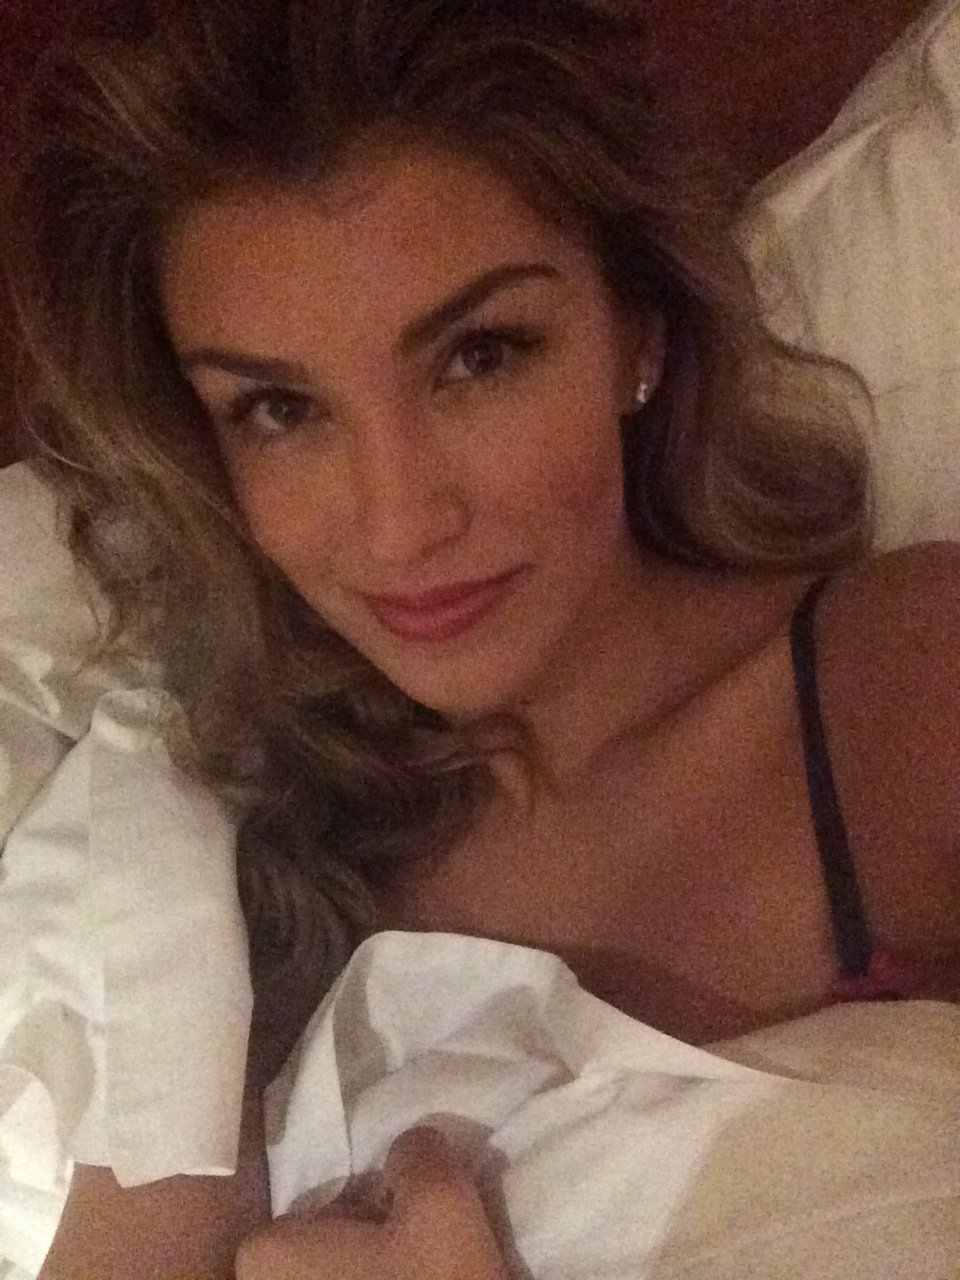 Amy Willerton Tits pics] pageant contestant amy willerton totally nude